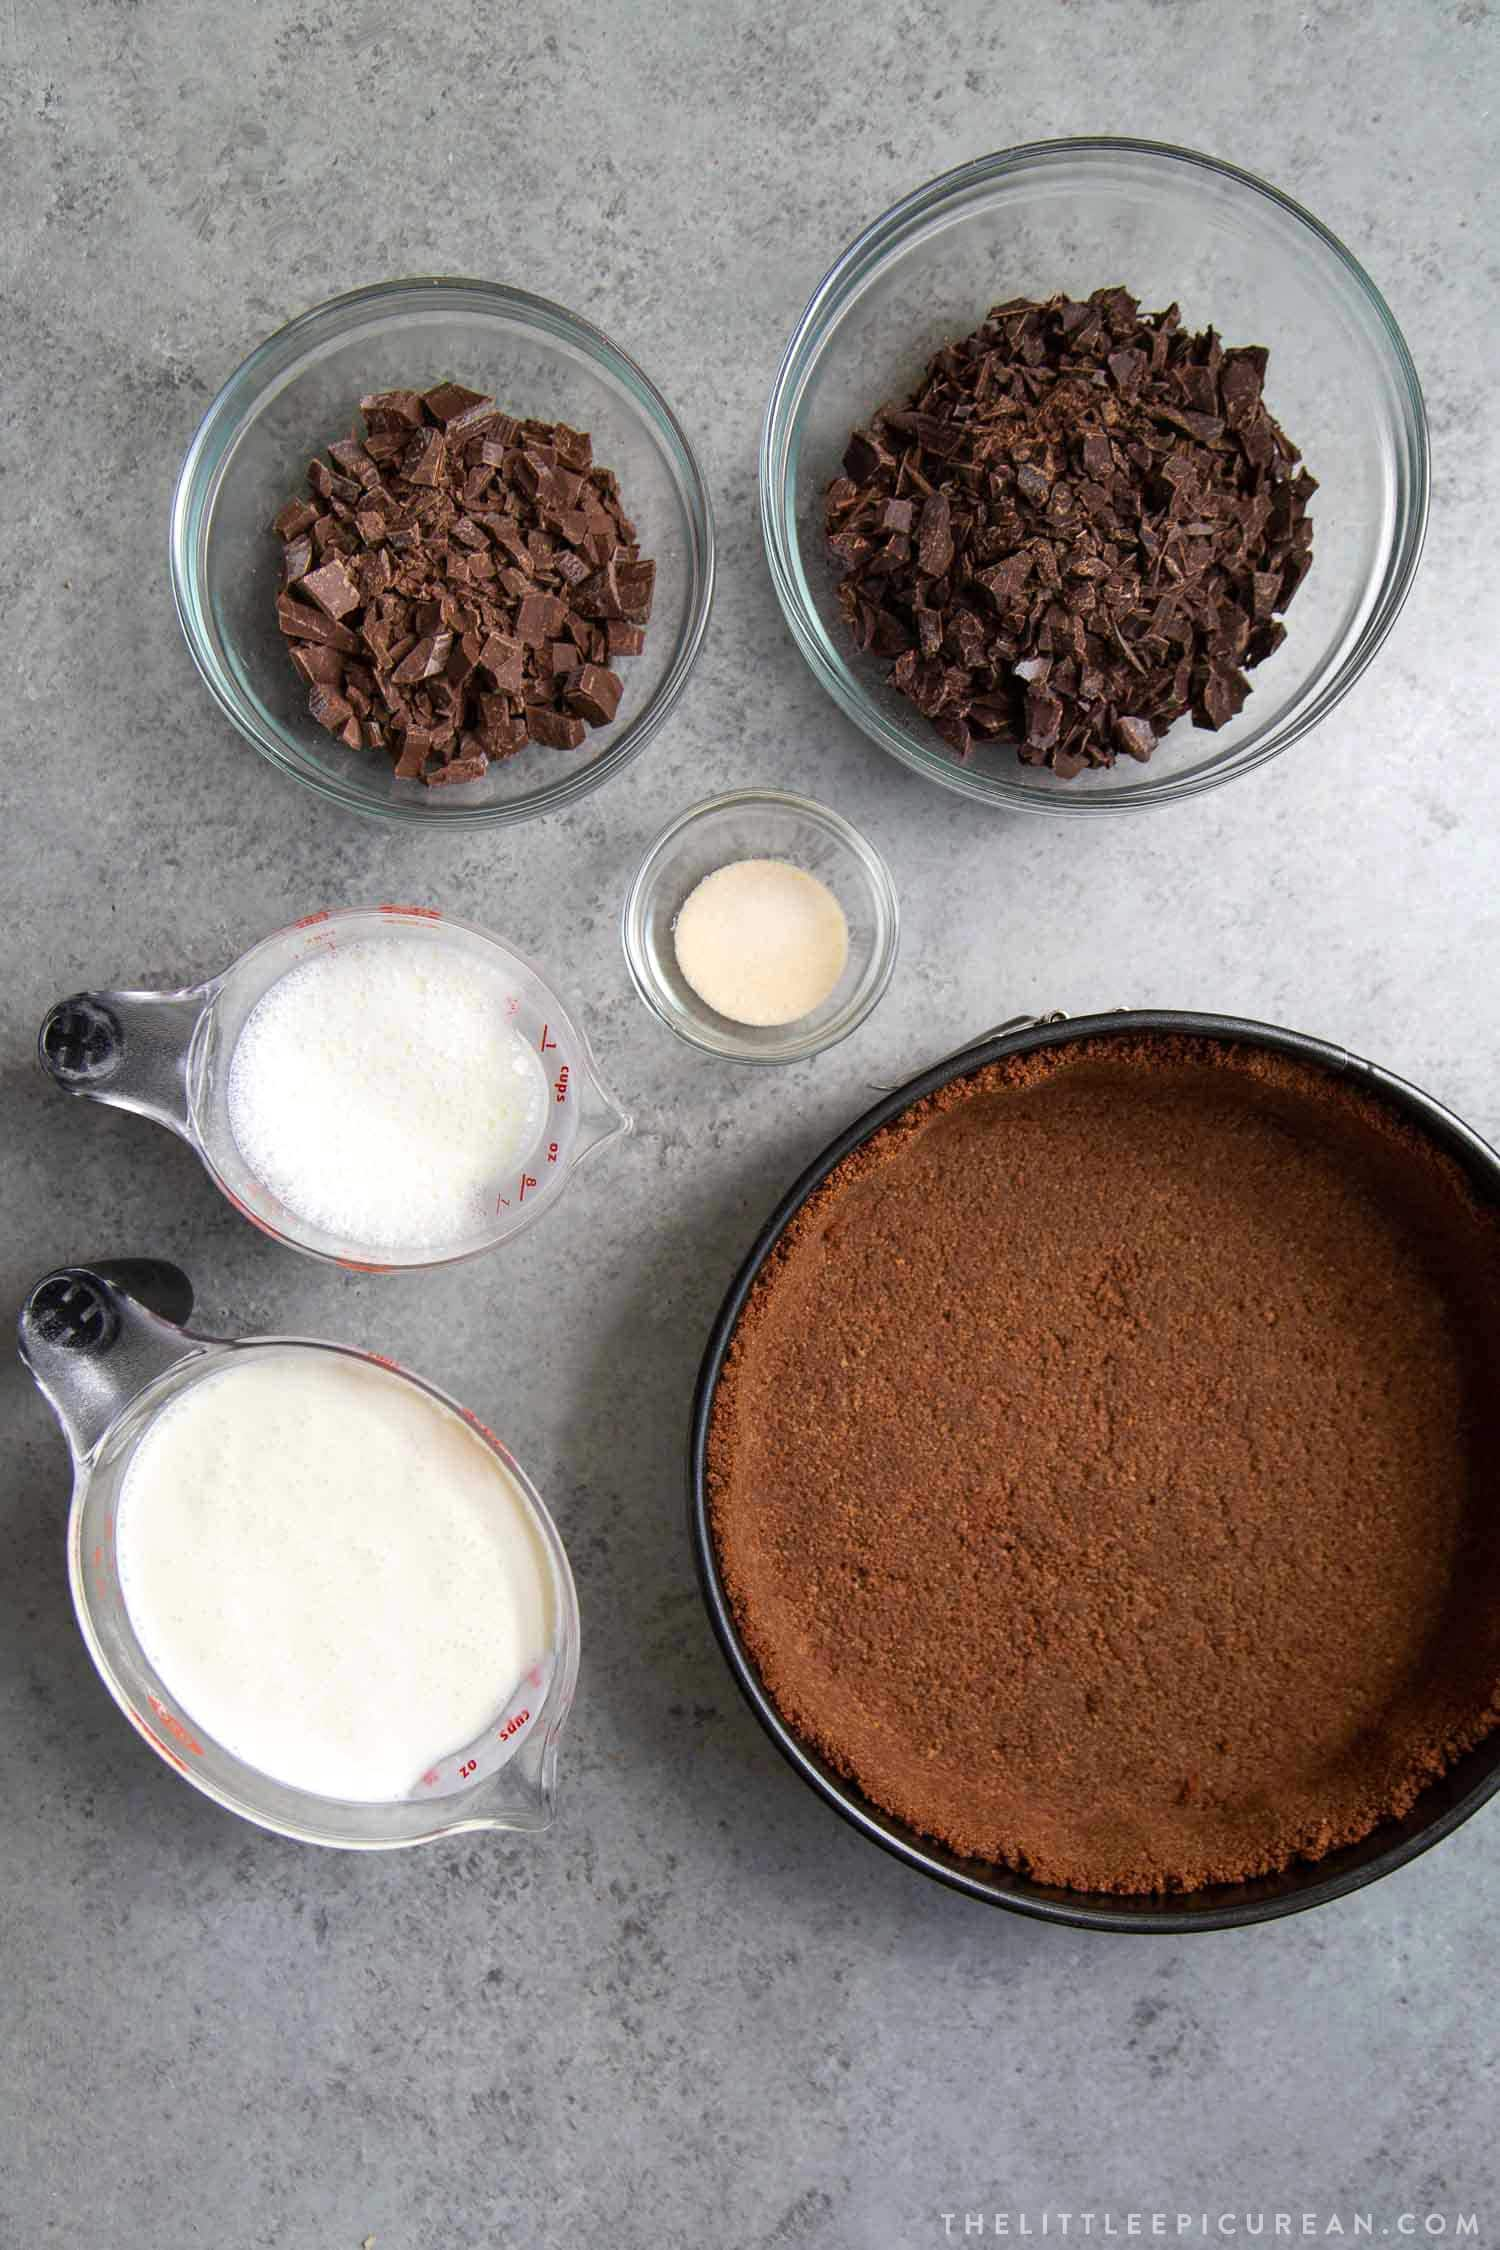 Ingredients for Chocolate Mousse Pie